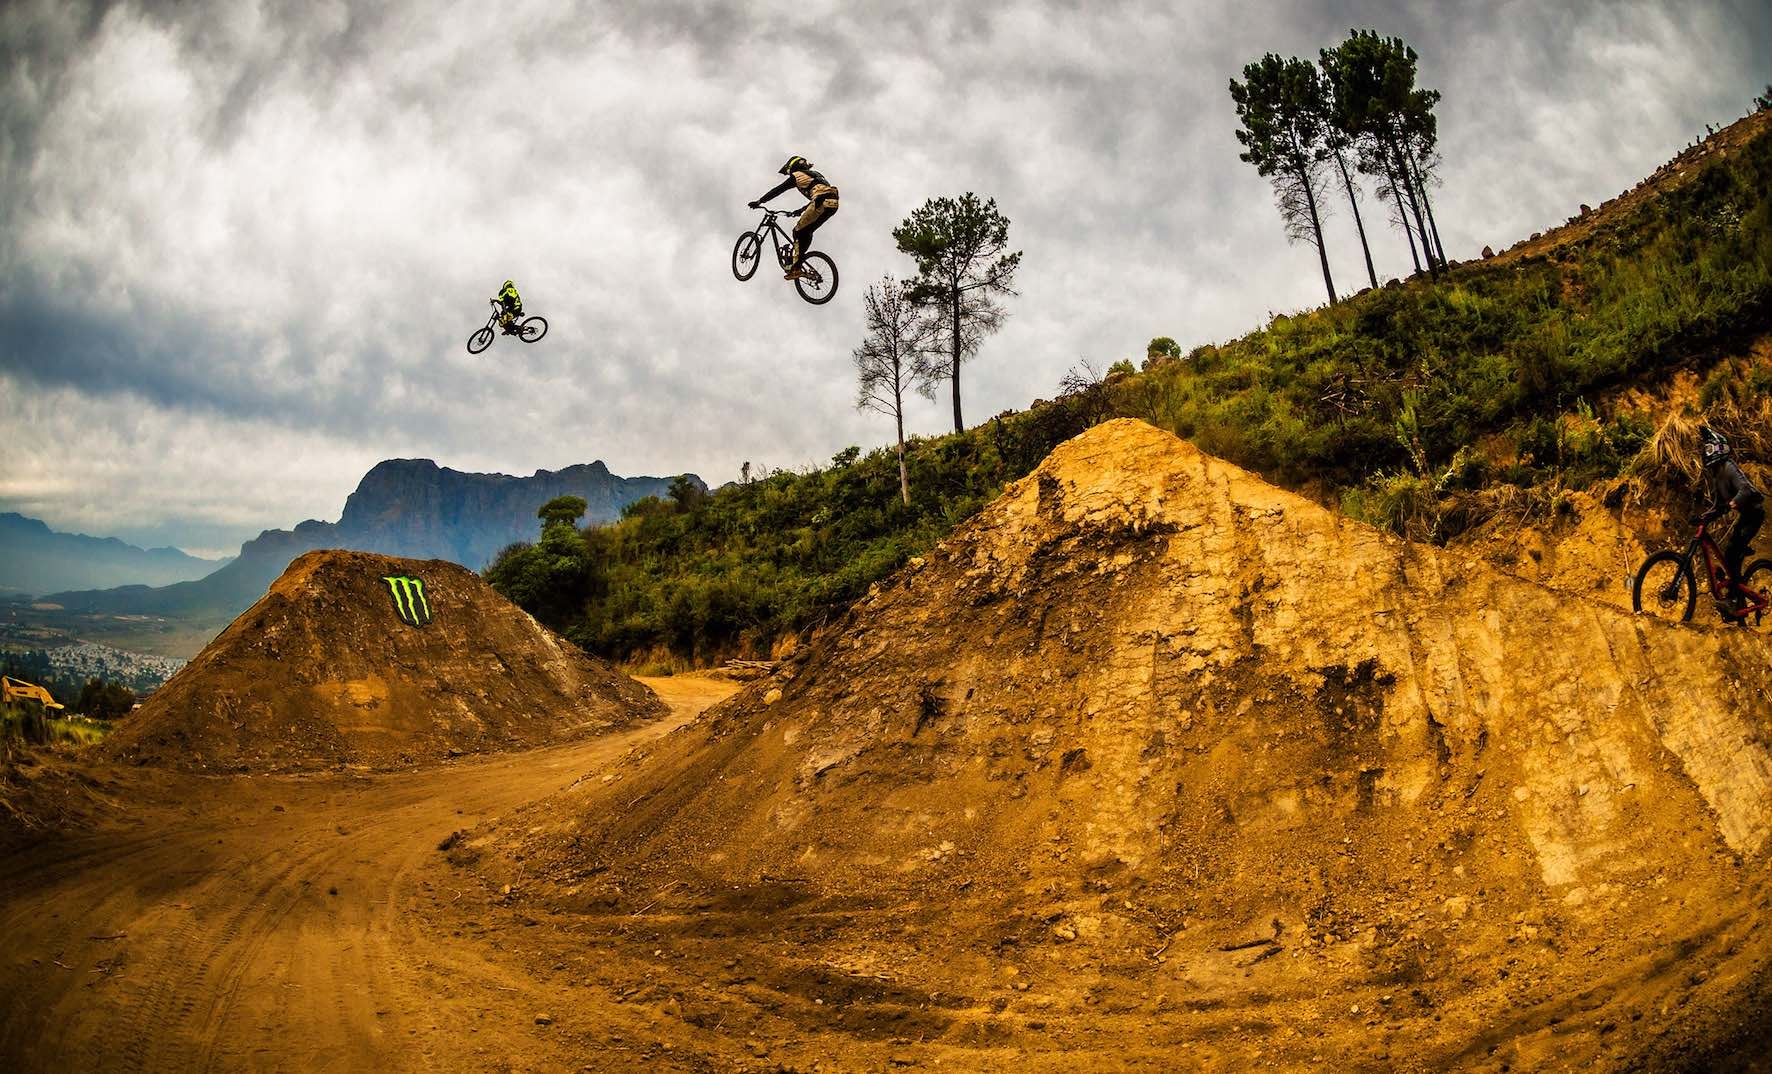 Expect nothing less than the biggest Freeride MTB jumps at DarkFEST